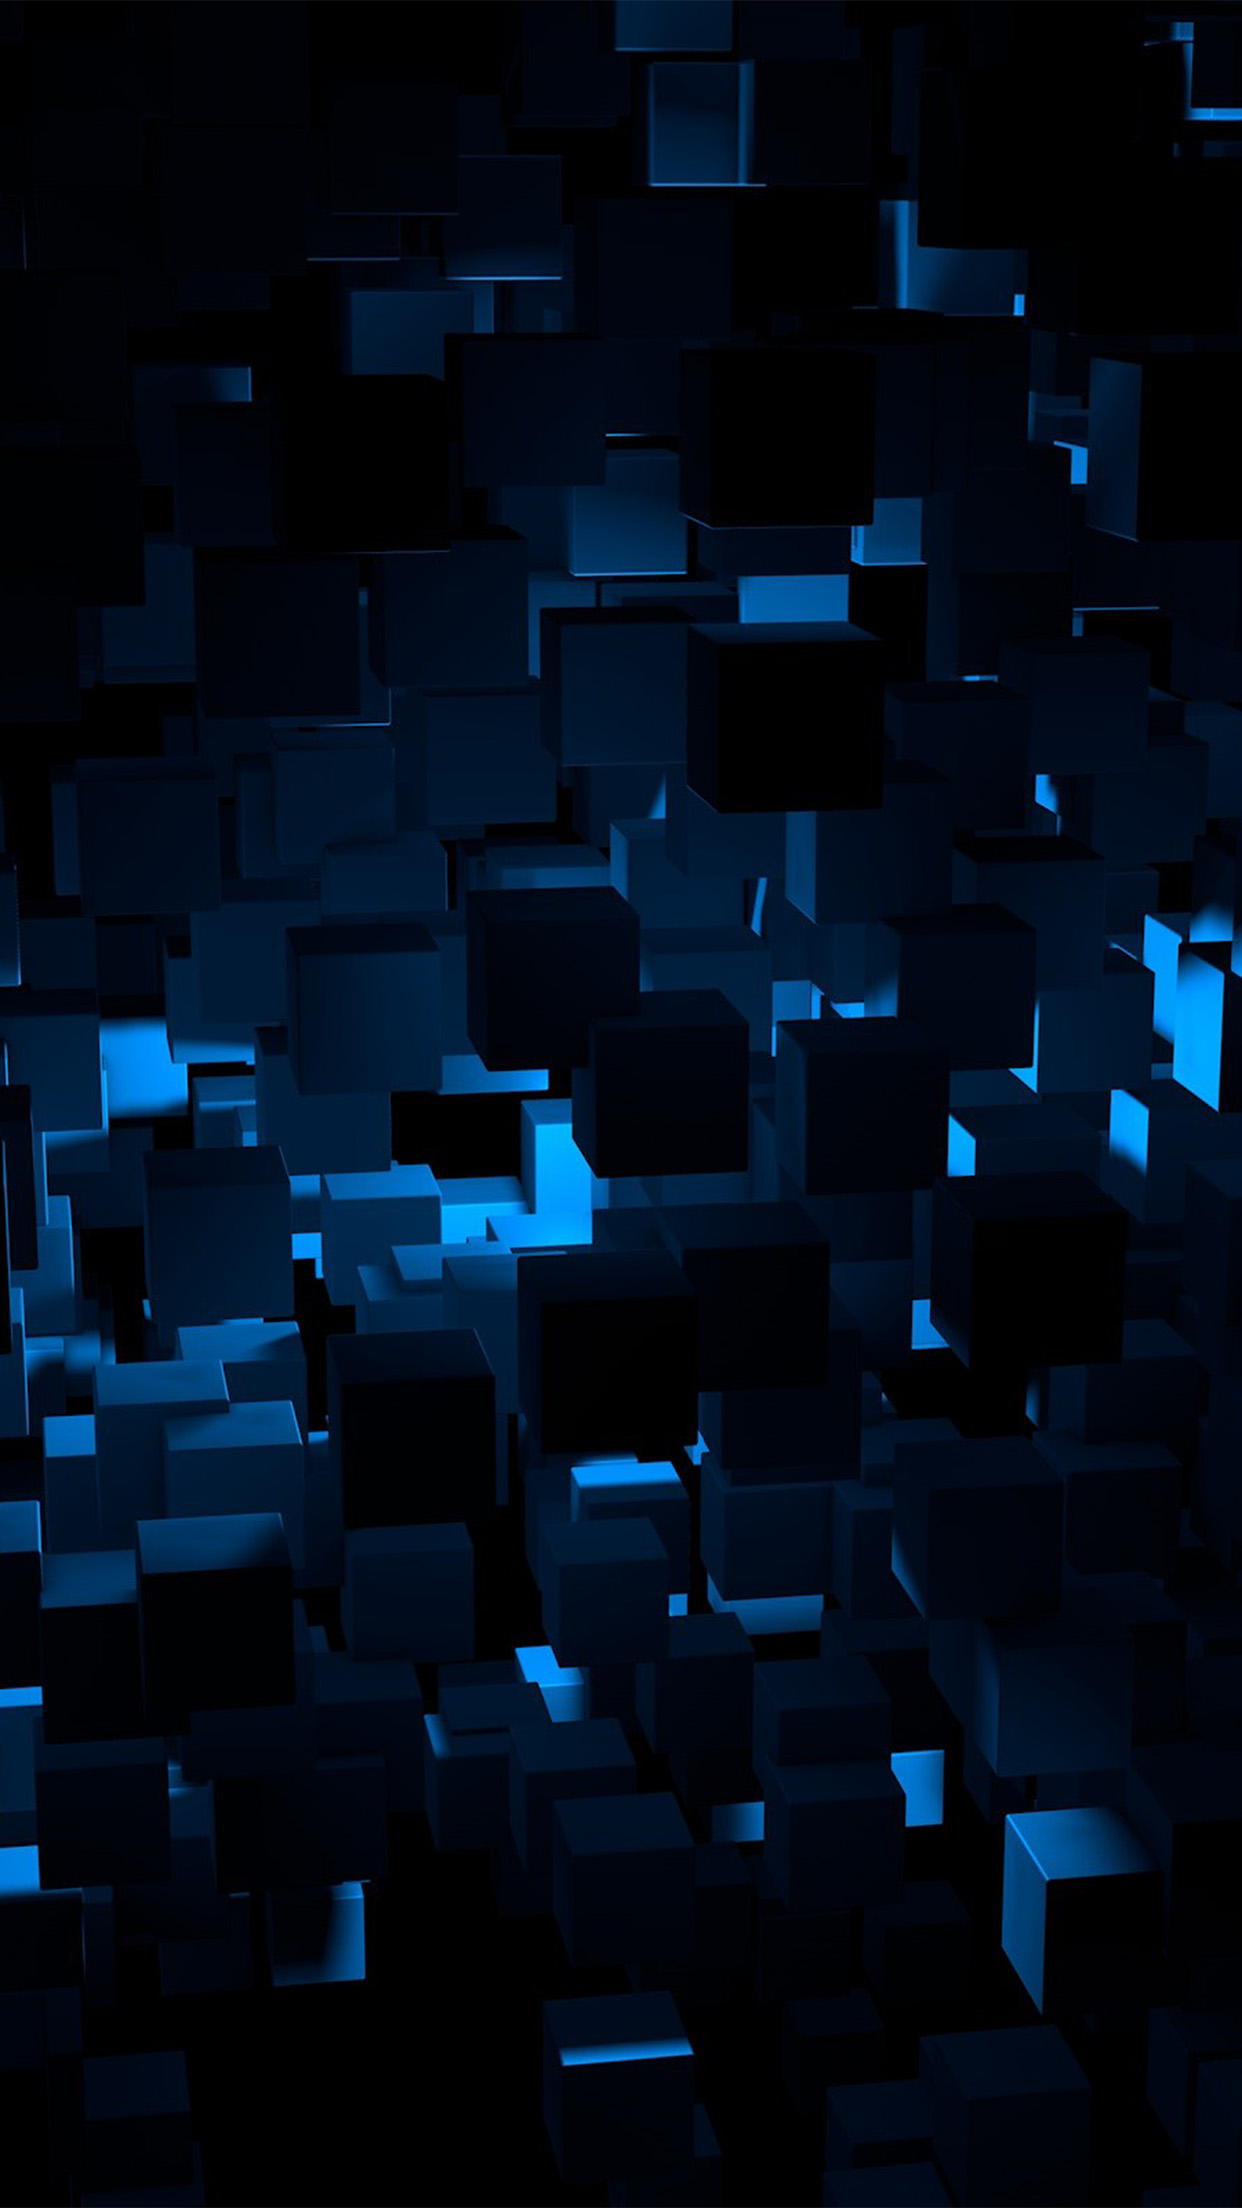 cube dark blue abstract pattern android wallpaper - android hd